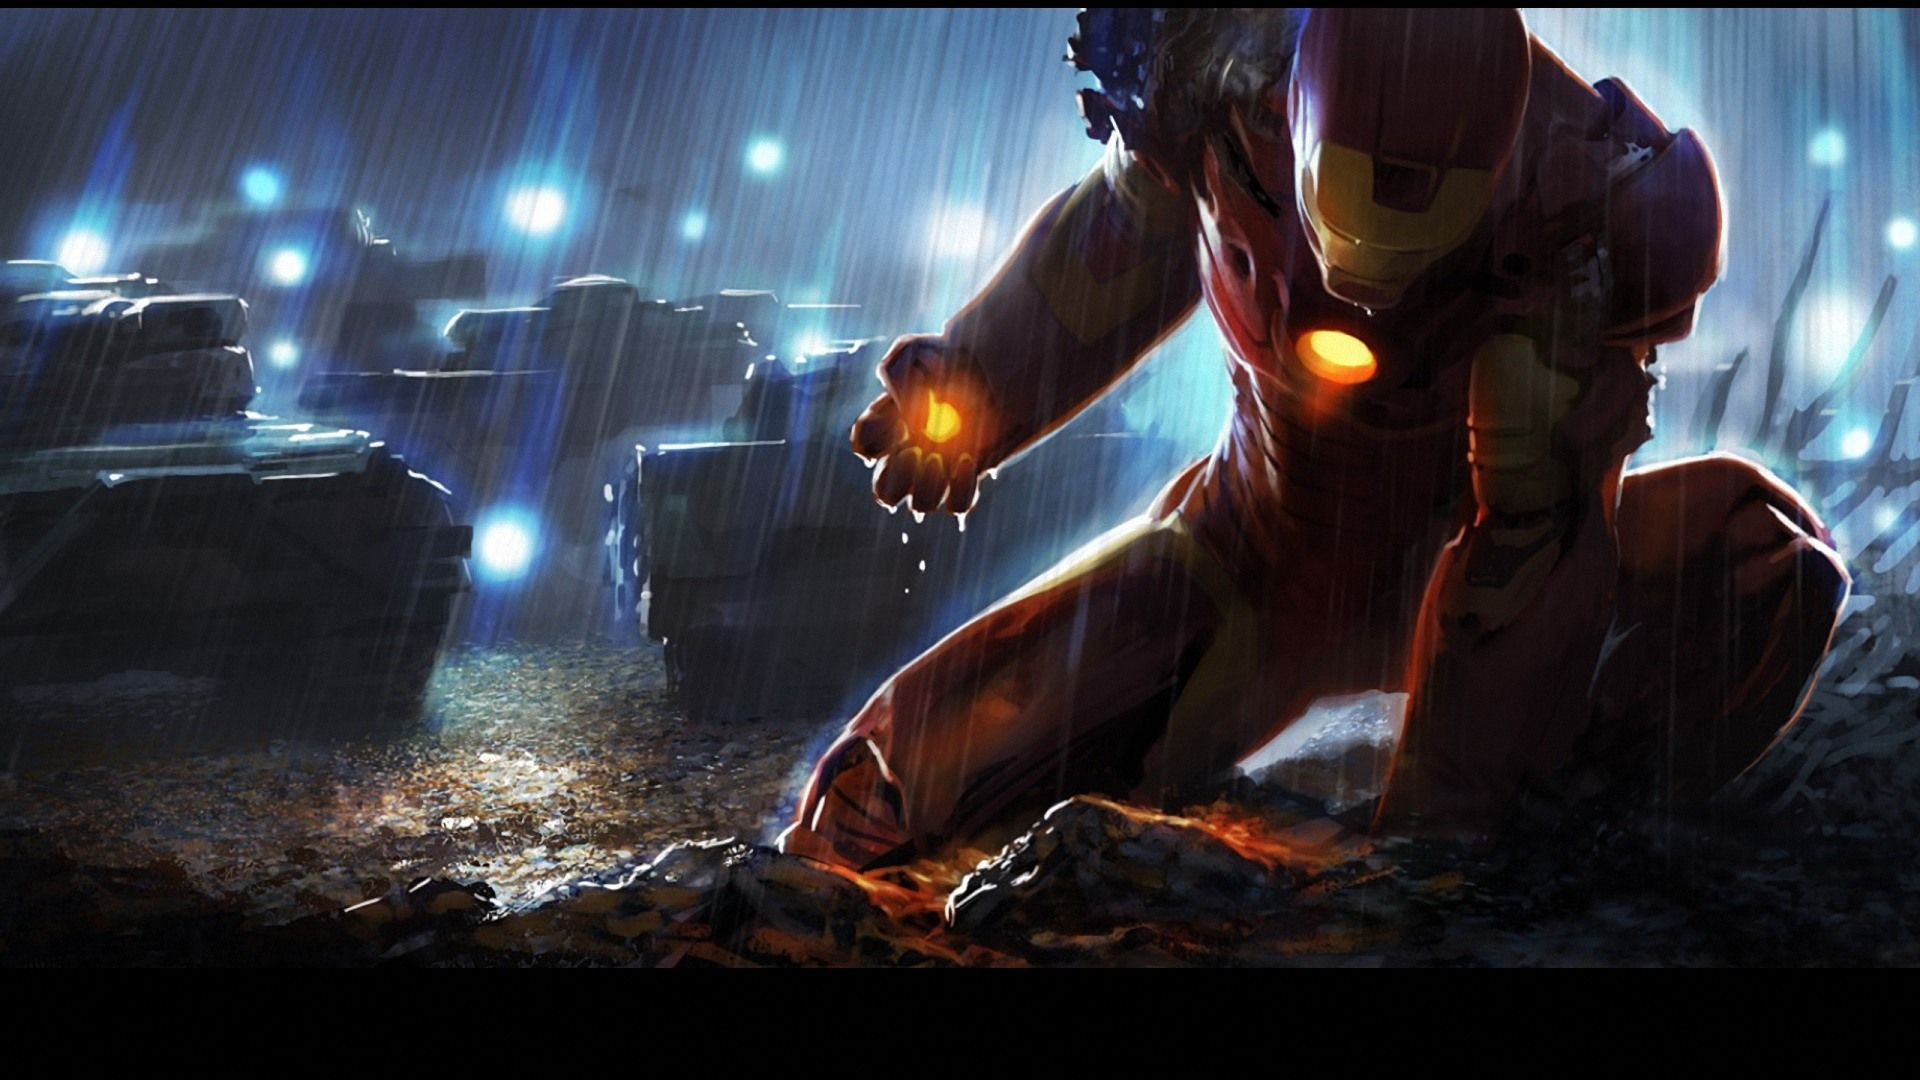 Iron man best htc one wallpapers hd wallpapers pinterest hd iron man hd hollywood movie wallpapers collection for desktop voltagebd Gallery